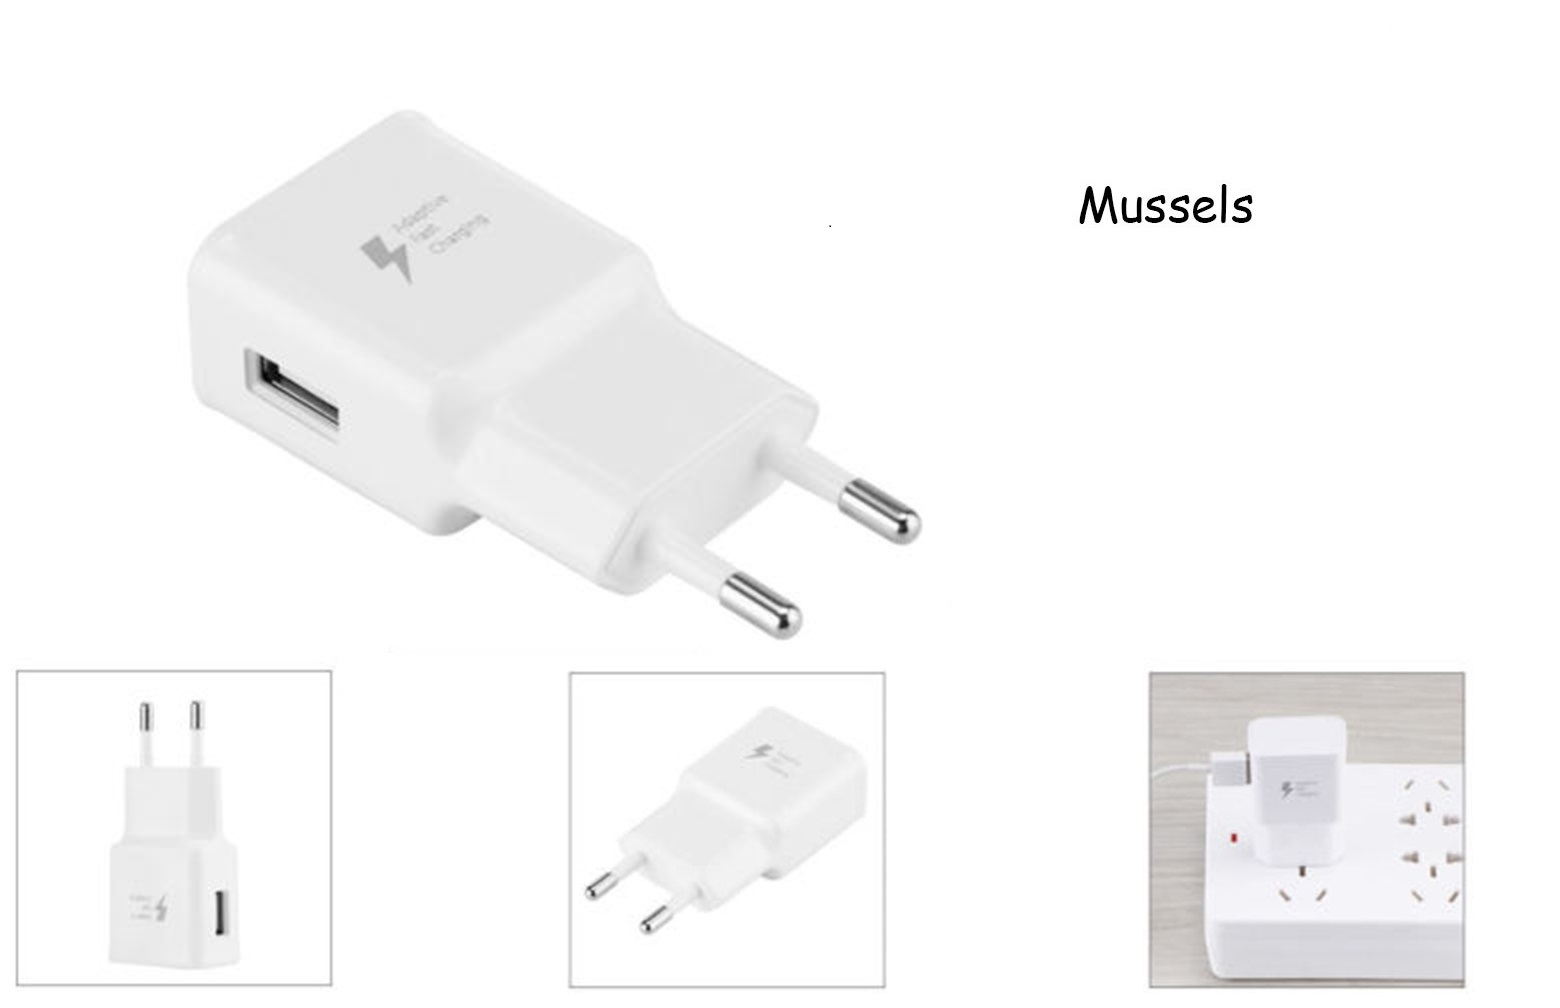 USB Charger Quick Charge 3.0 For <font><b>Meizu</b></font> Note 9 8 16s <font><b>16</b></font> 15 Plus M8 Lite C9 <font><b>Pro</b></font> Fast Wall Charger For iPhone Mobile Phone Charger image